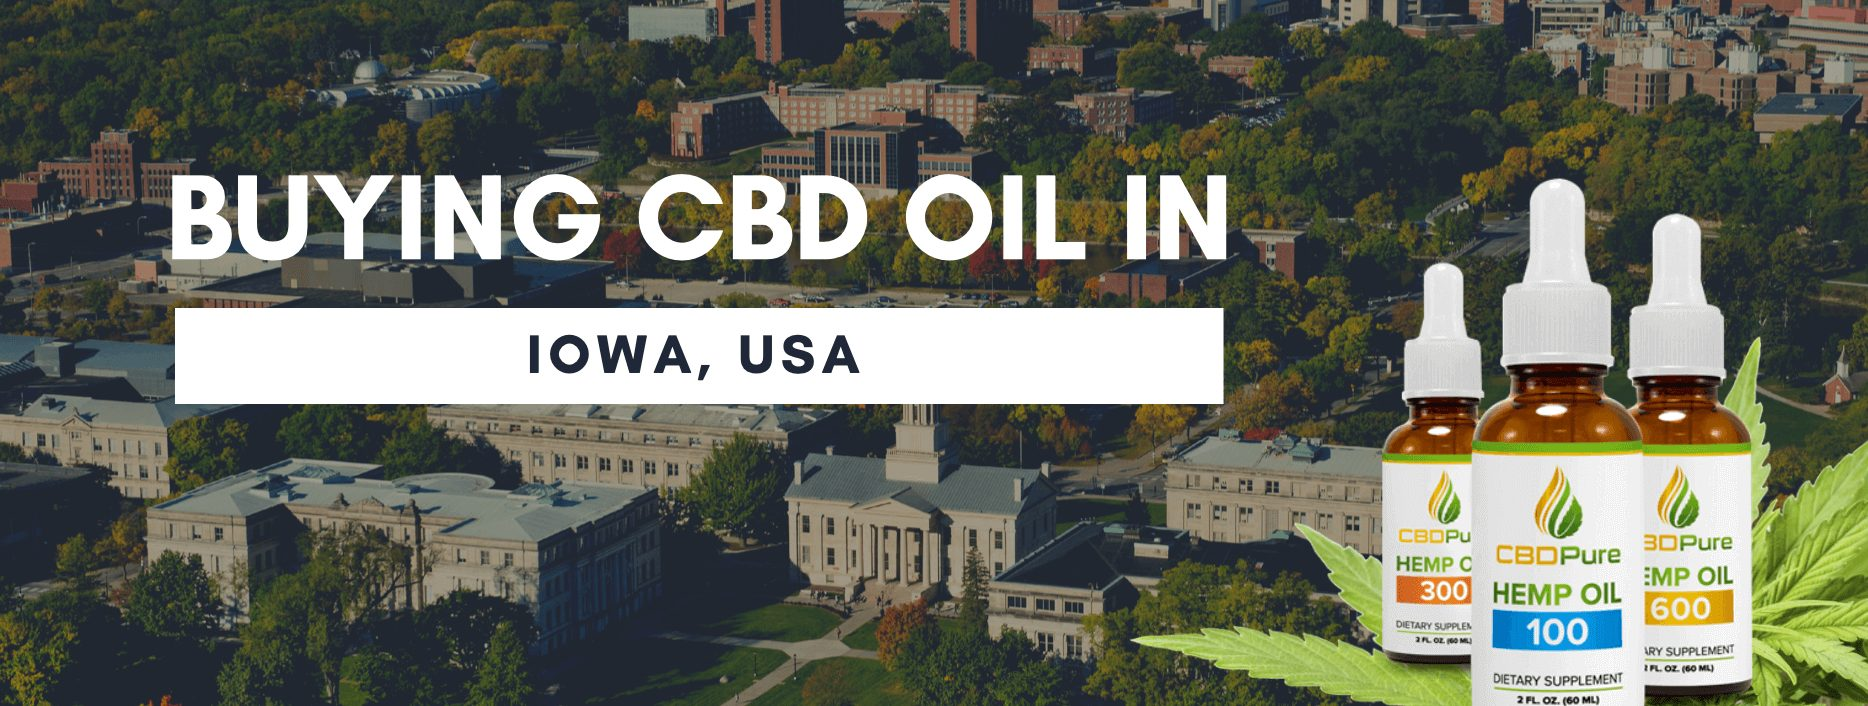 CBD oil in Iowa